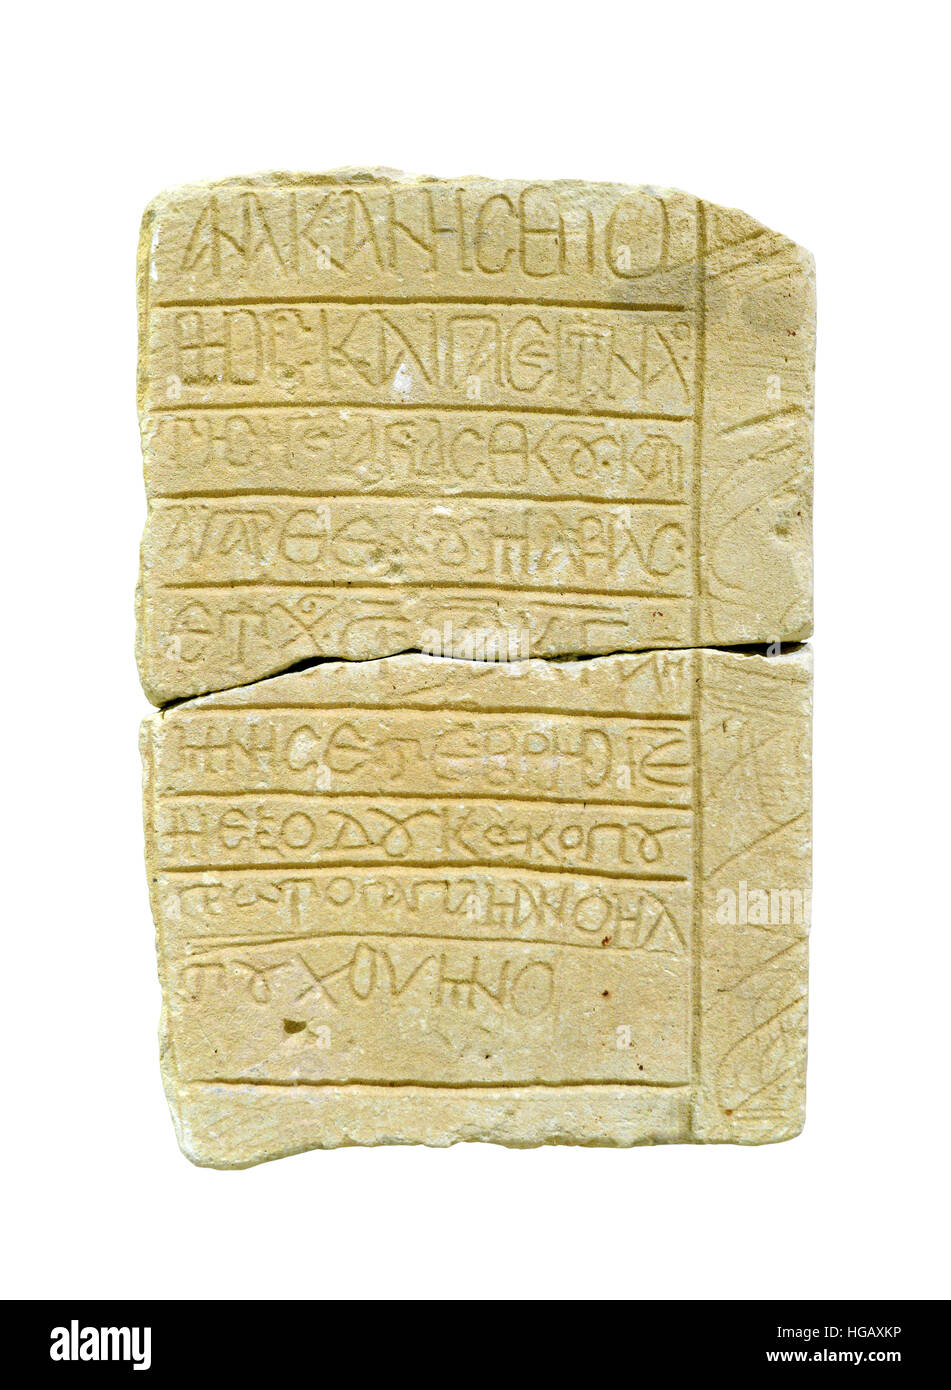 ancient greek written stone isolated over white - Stock Image